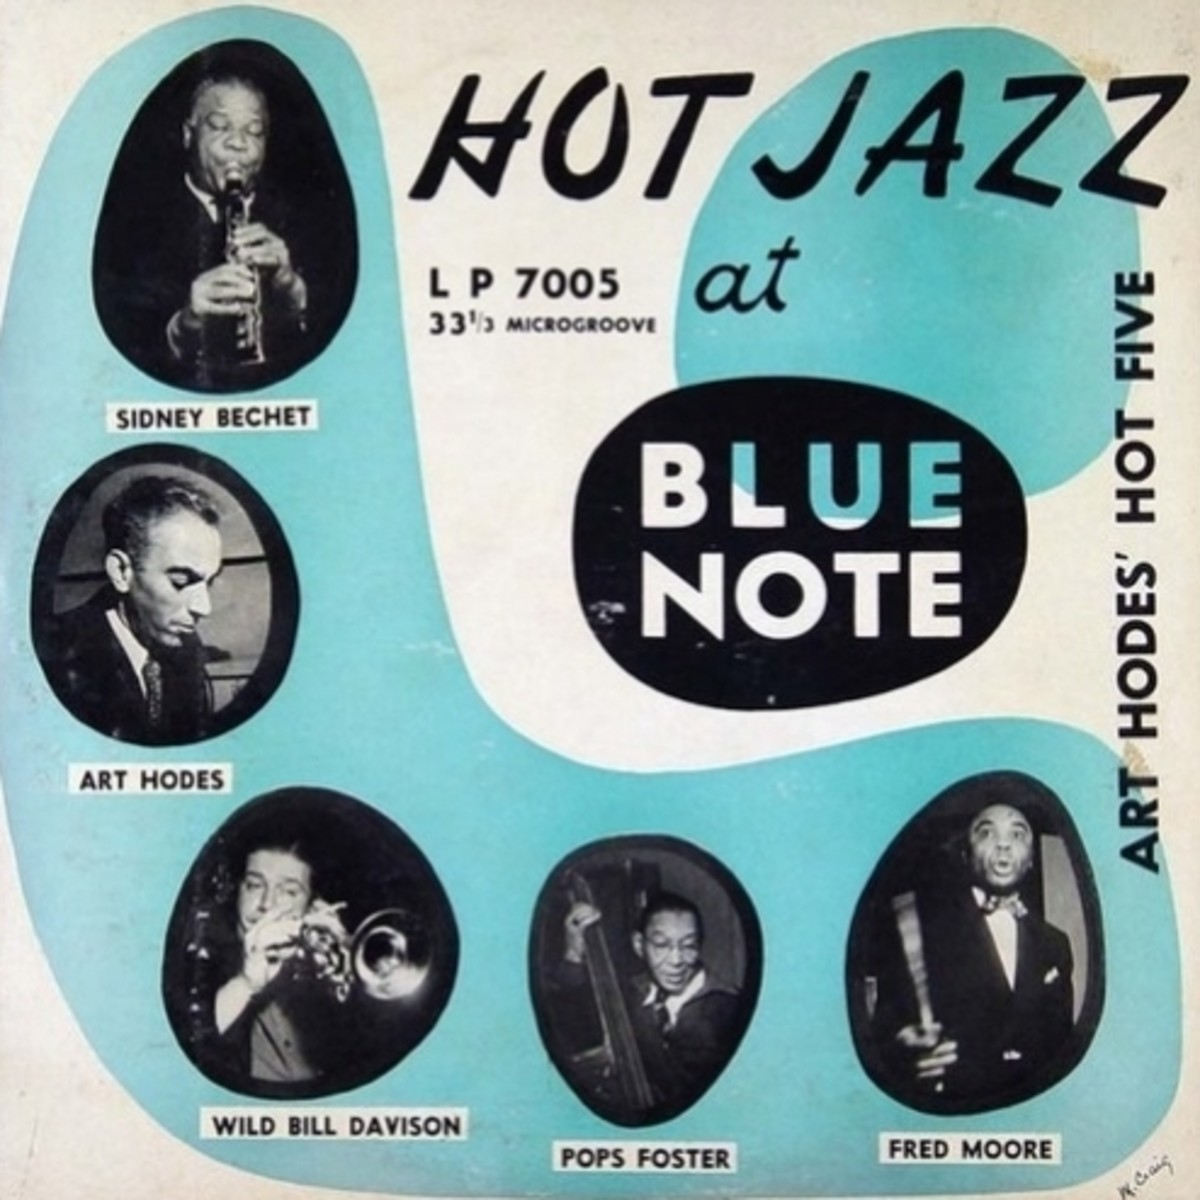 """Art Hodes Hot Five """"Hot Jazz at Blue Note"""" - Blue Note Records BLP 7005 10"""" LP Vinyl Record (1950) Album Cover Design by Paul Bacon Photos by Francis Wolff"""